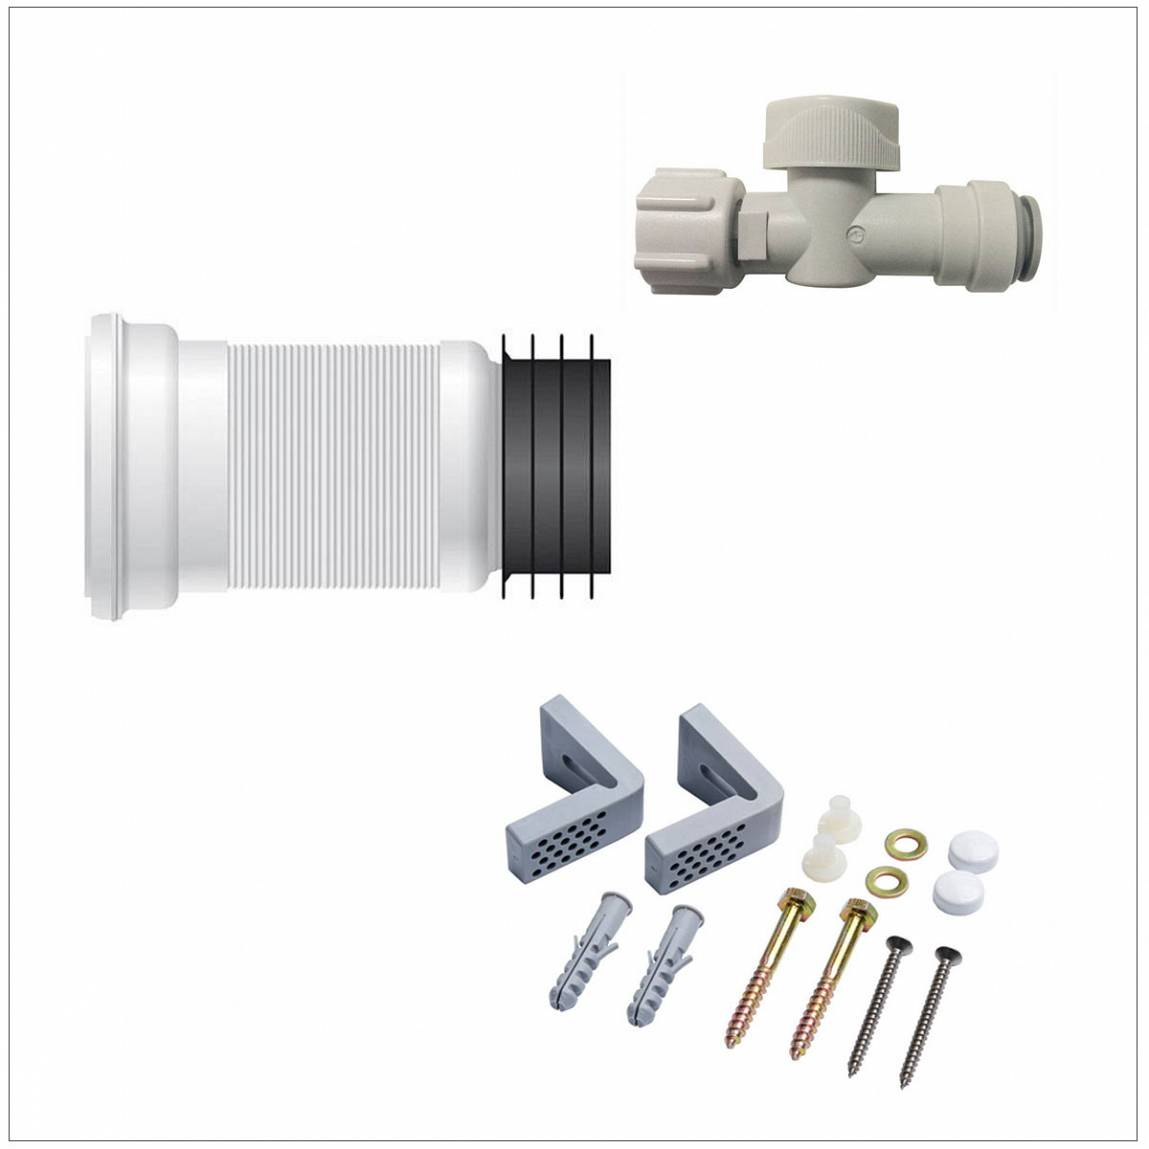 Image of Toilet Fitting Pack